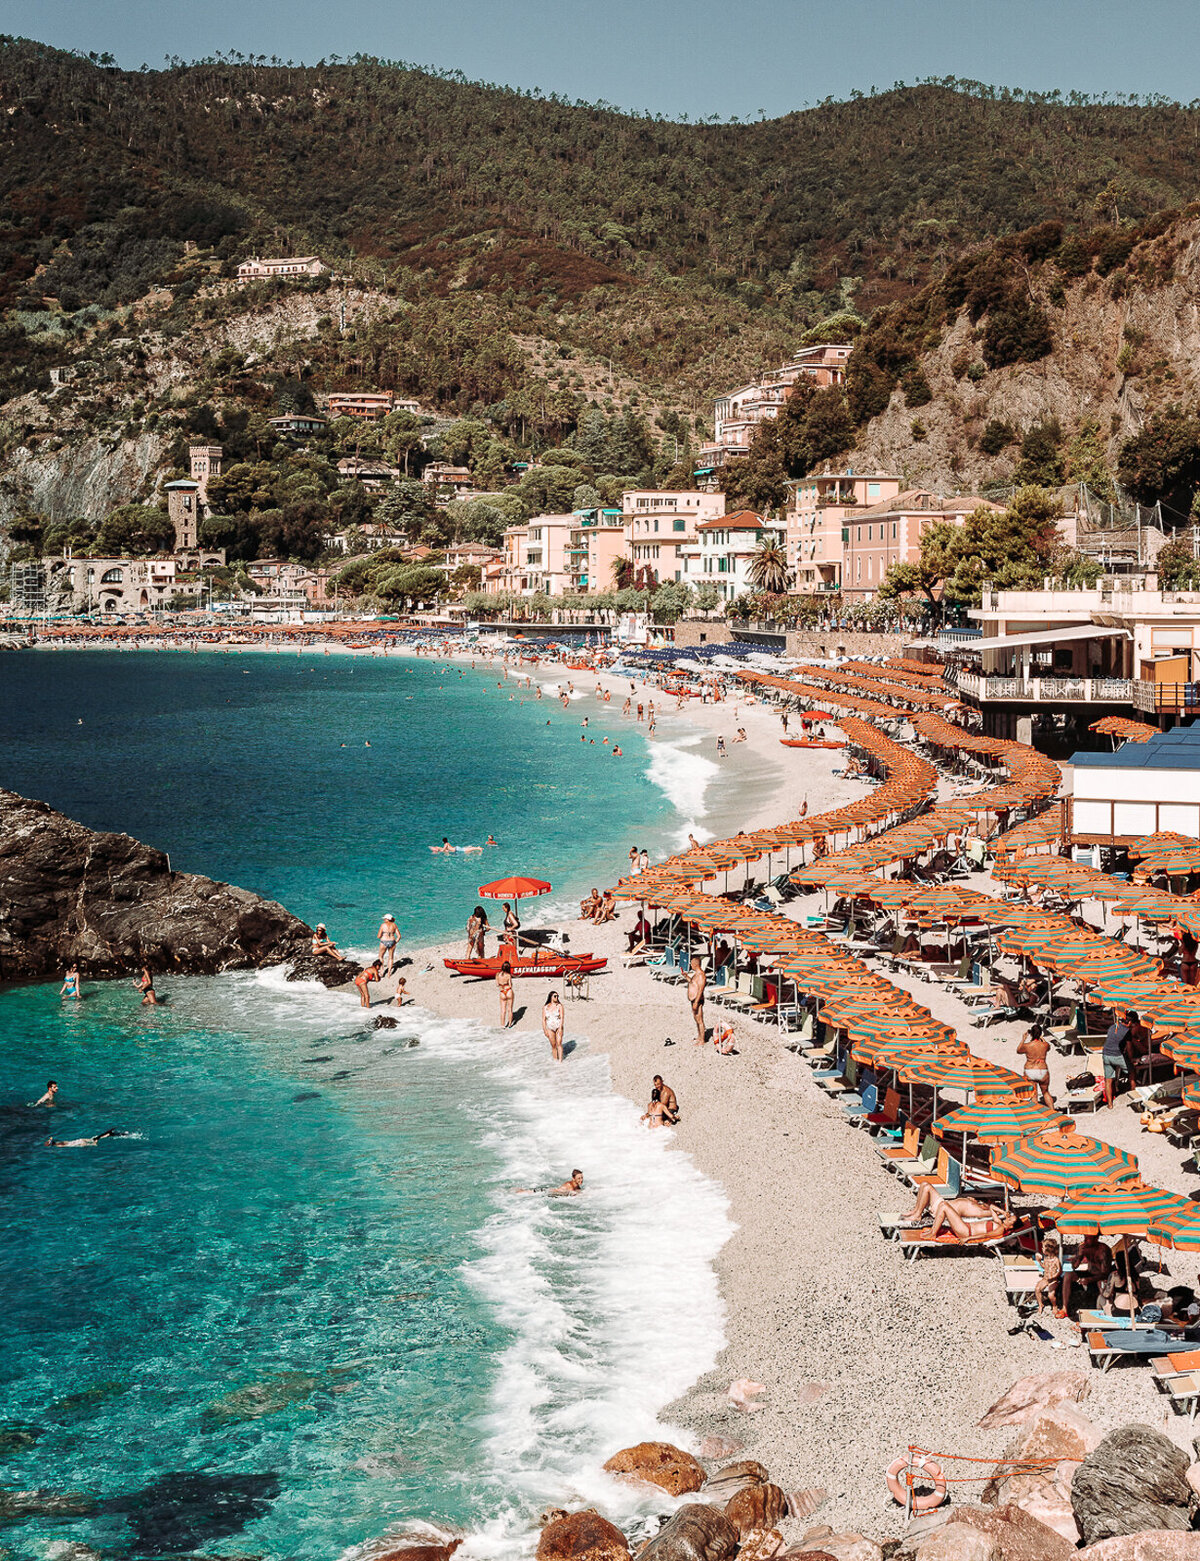 Italian Summer, Cinque Terre (re-edit)